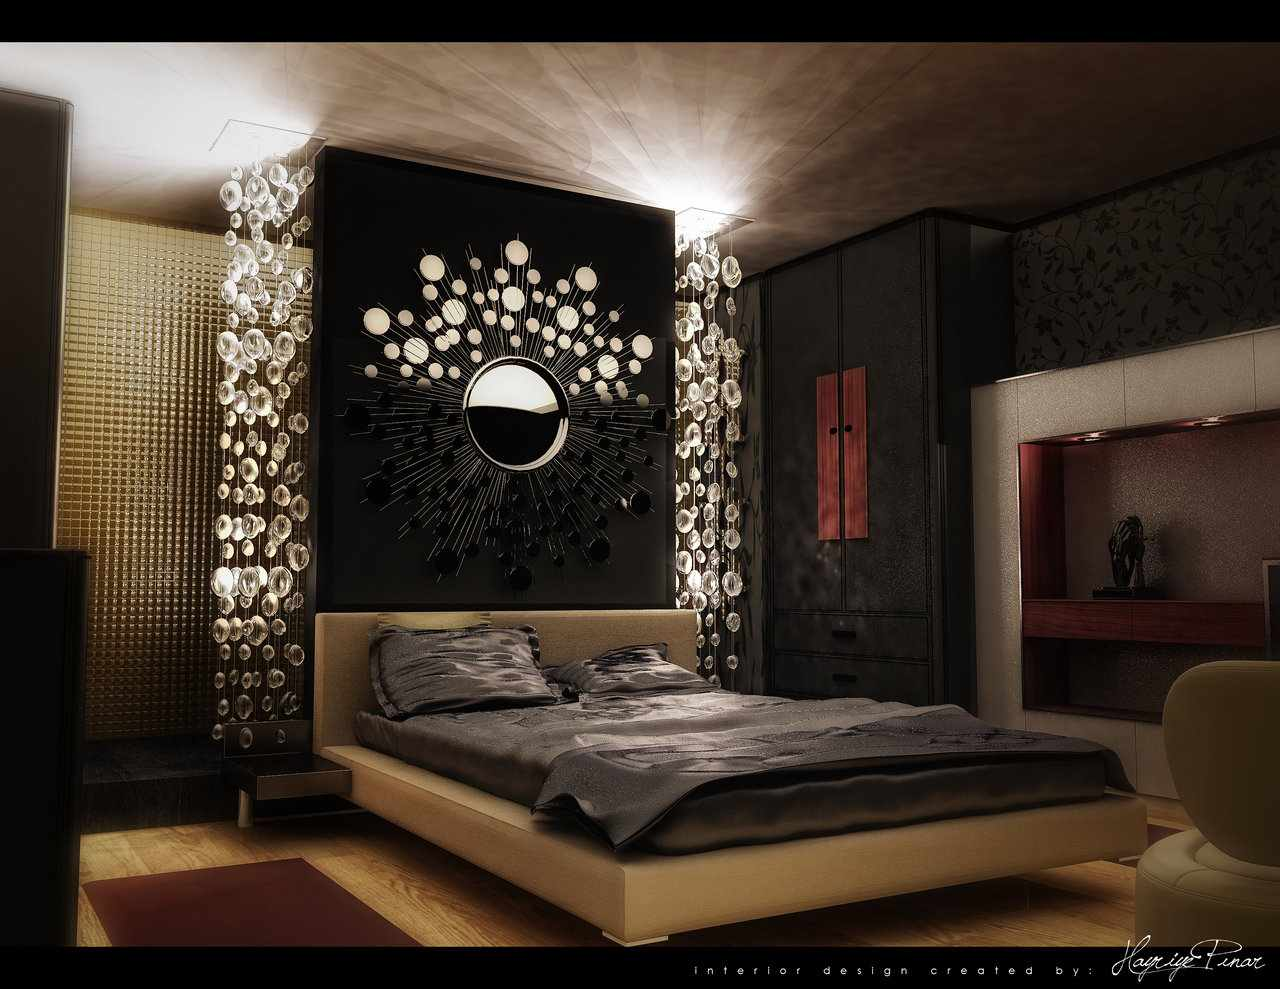 Ikea bedroom ideas ikea bedroom 2014 ideas Single bedroom design ideas